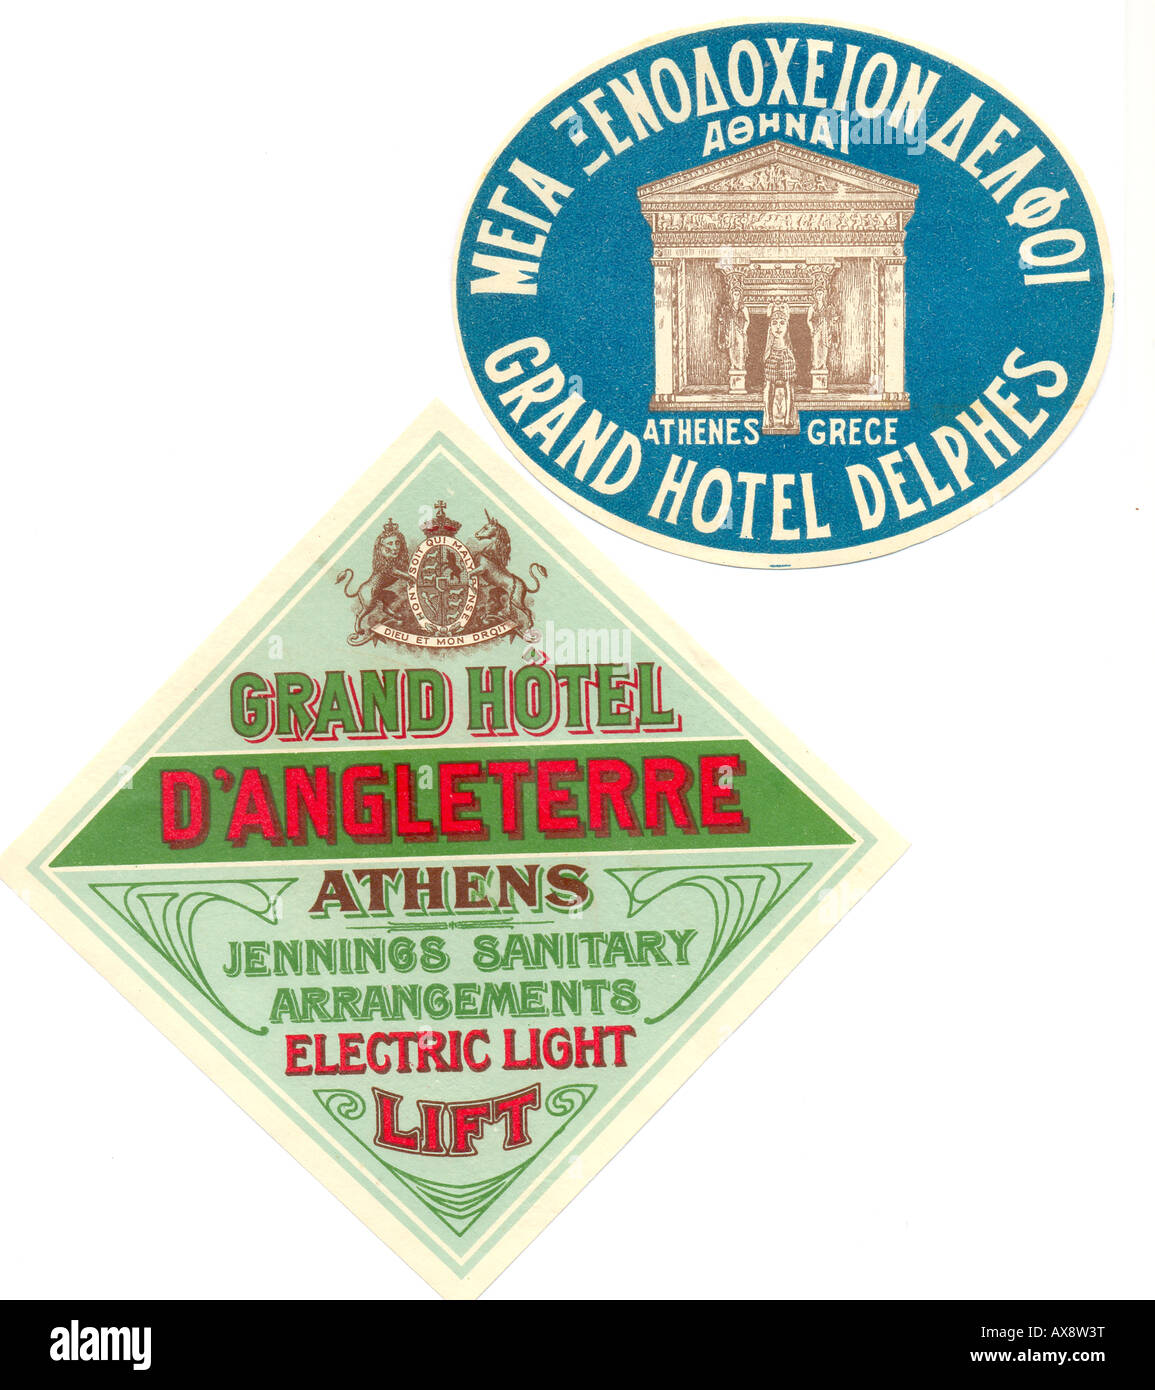 Greek hotel luggage labels 1920s - Stock Image